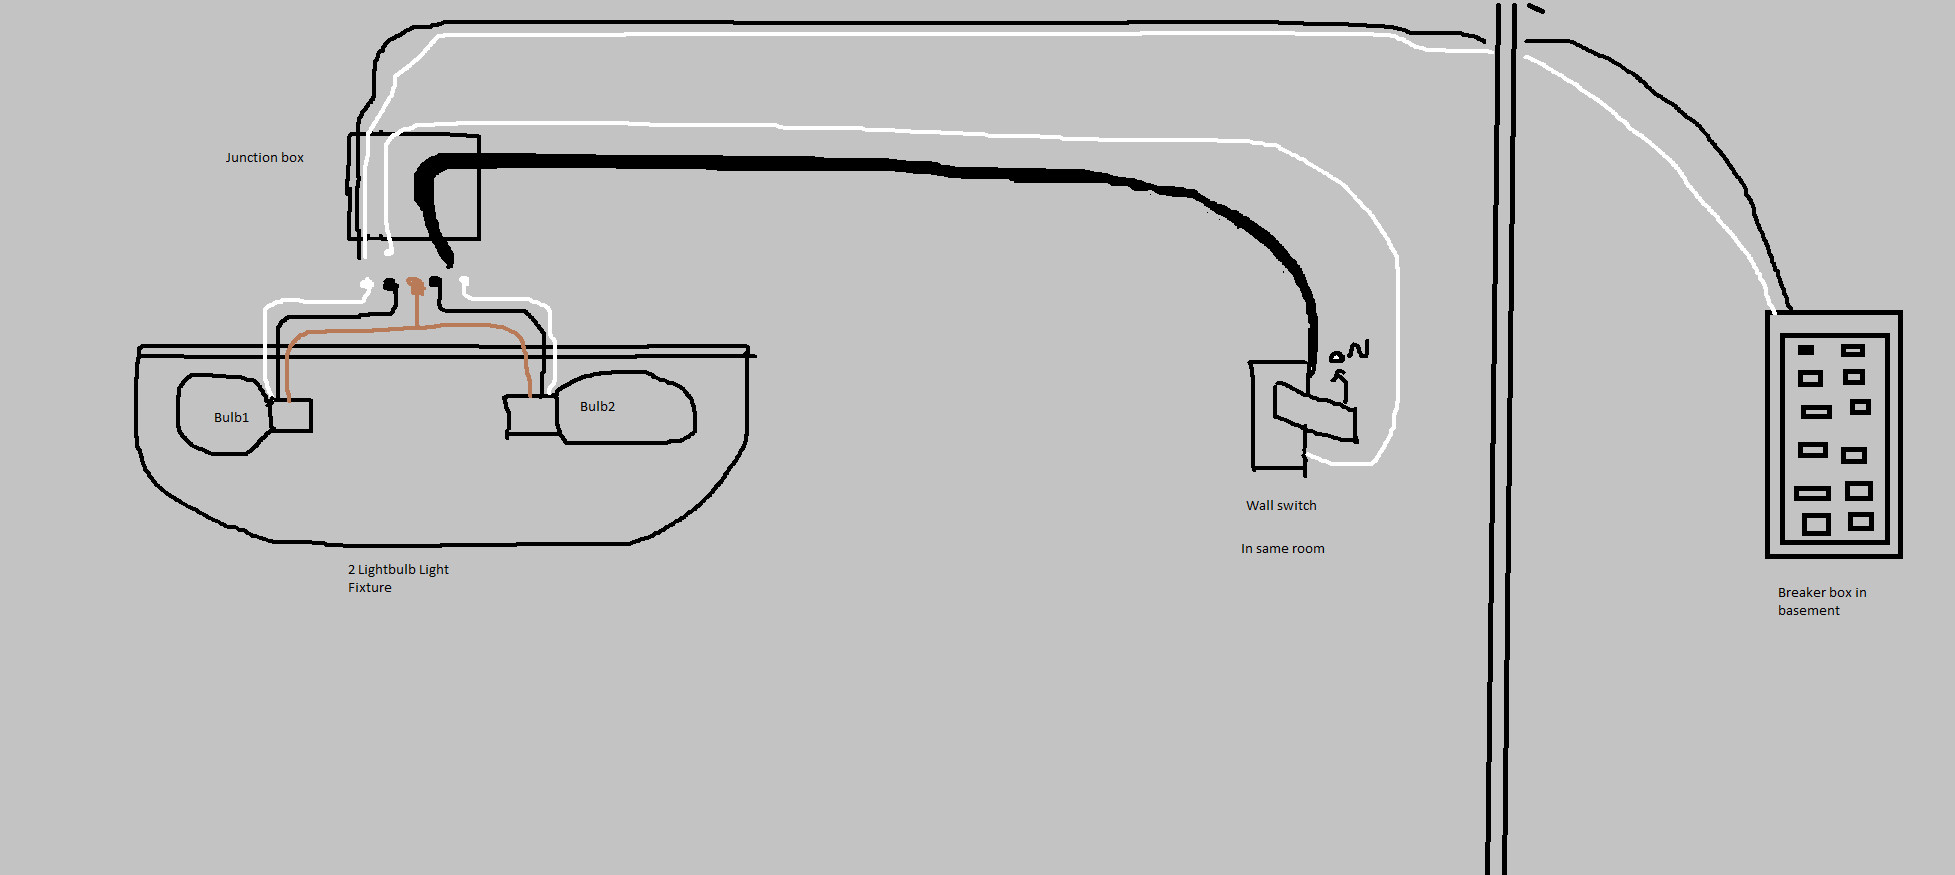 Sz 5631 Home Basic Home Wiring Diagrams Mobile Home Light Switch Wiring Free Diagram